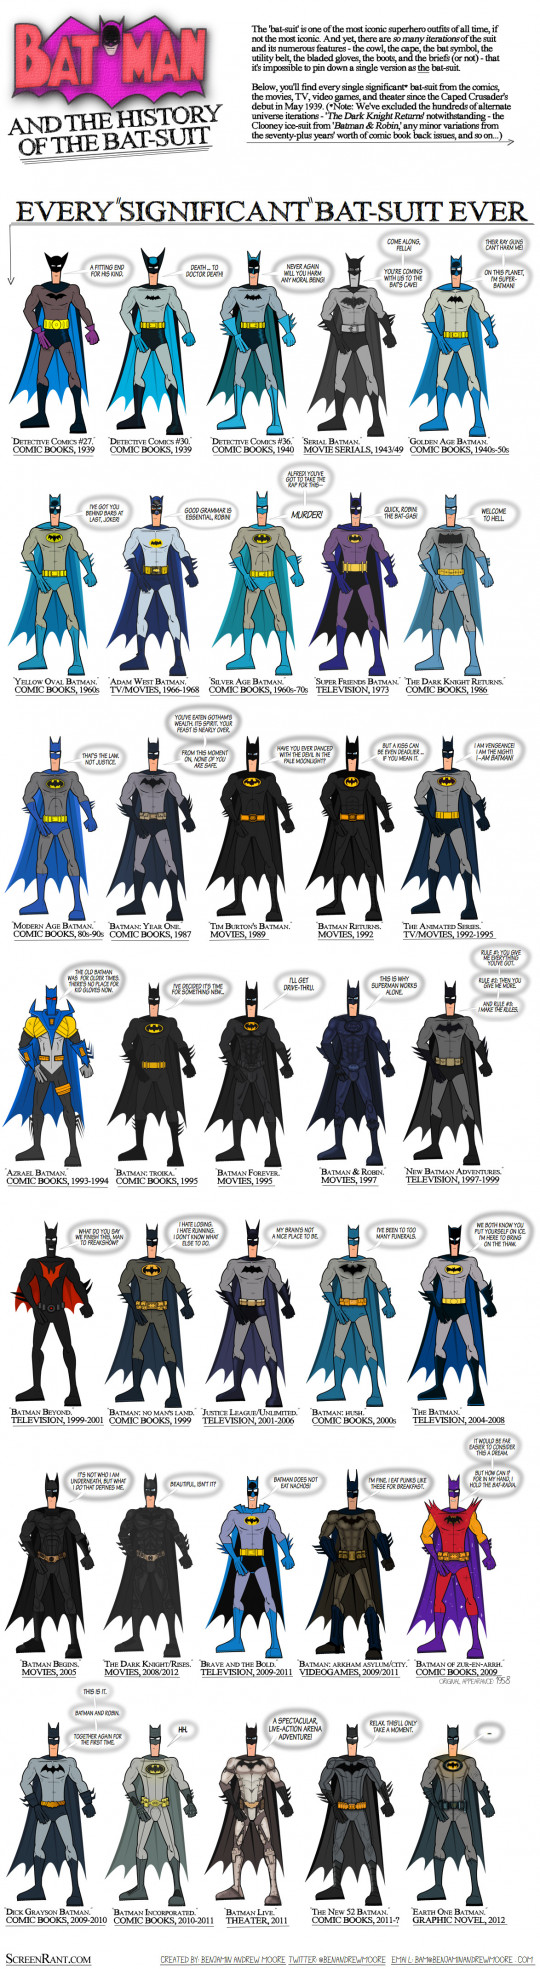 TheHistoryoftheBatSuit 4ef8a37b2d343 w540 The History of the Batmans Bat Suit